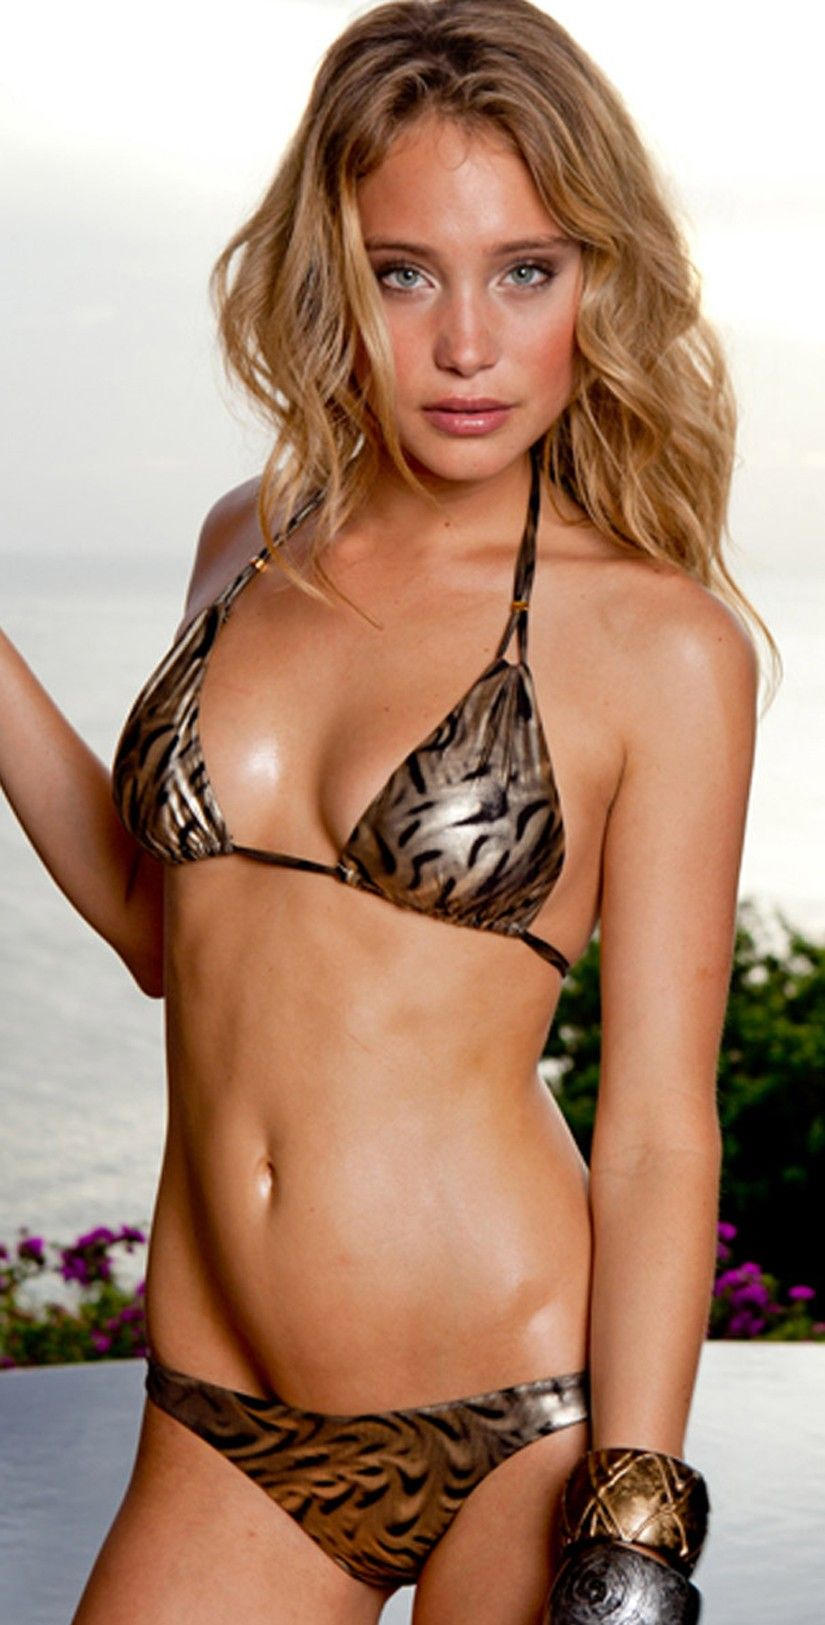 c4dee9e61073e Sauvage 2011 Metallic Bikini - Swimsuits